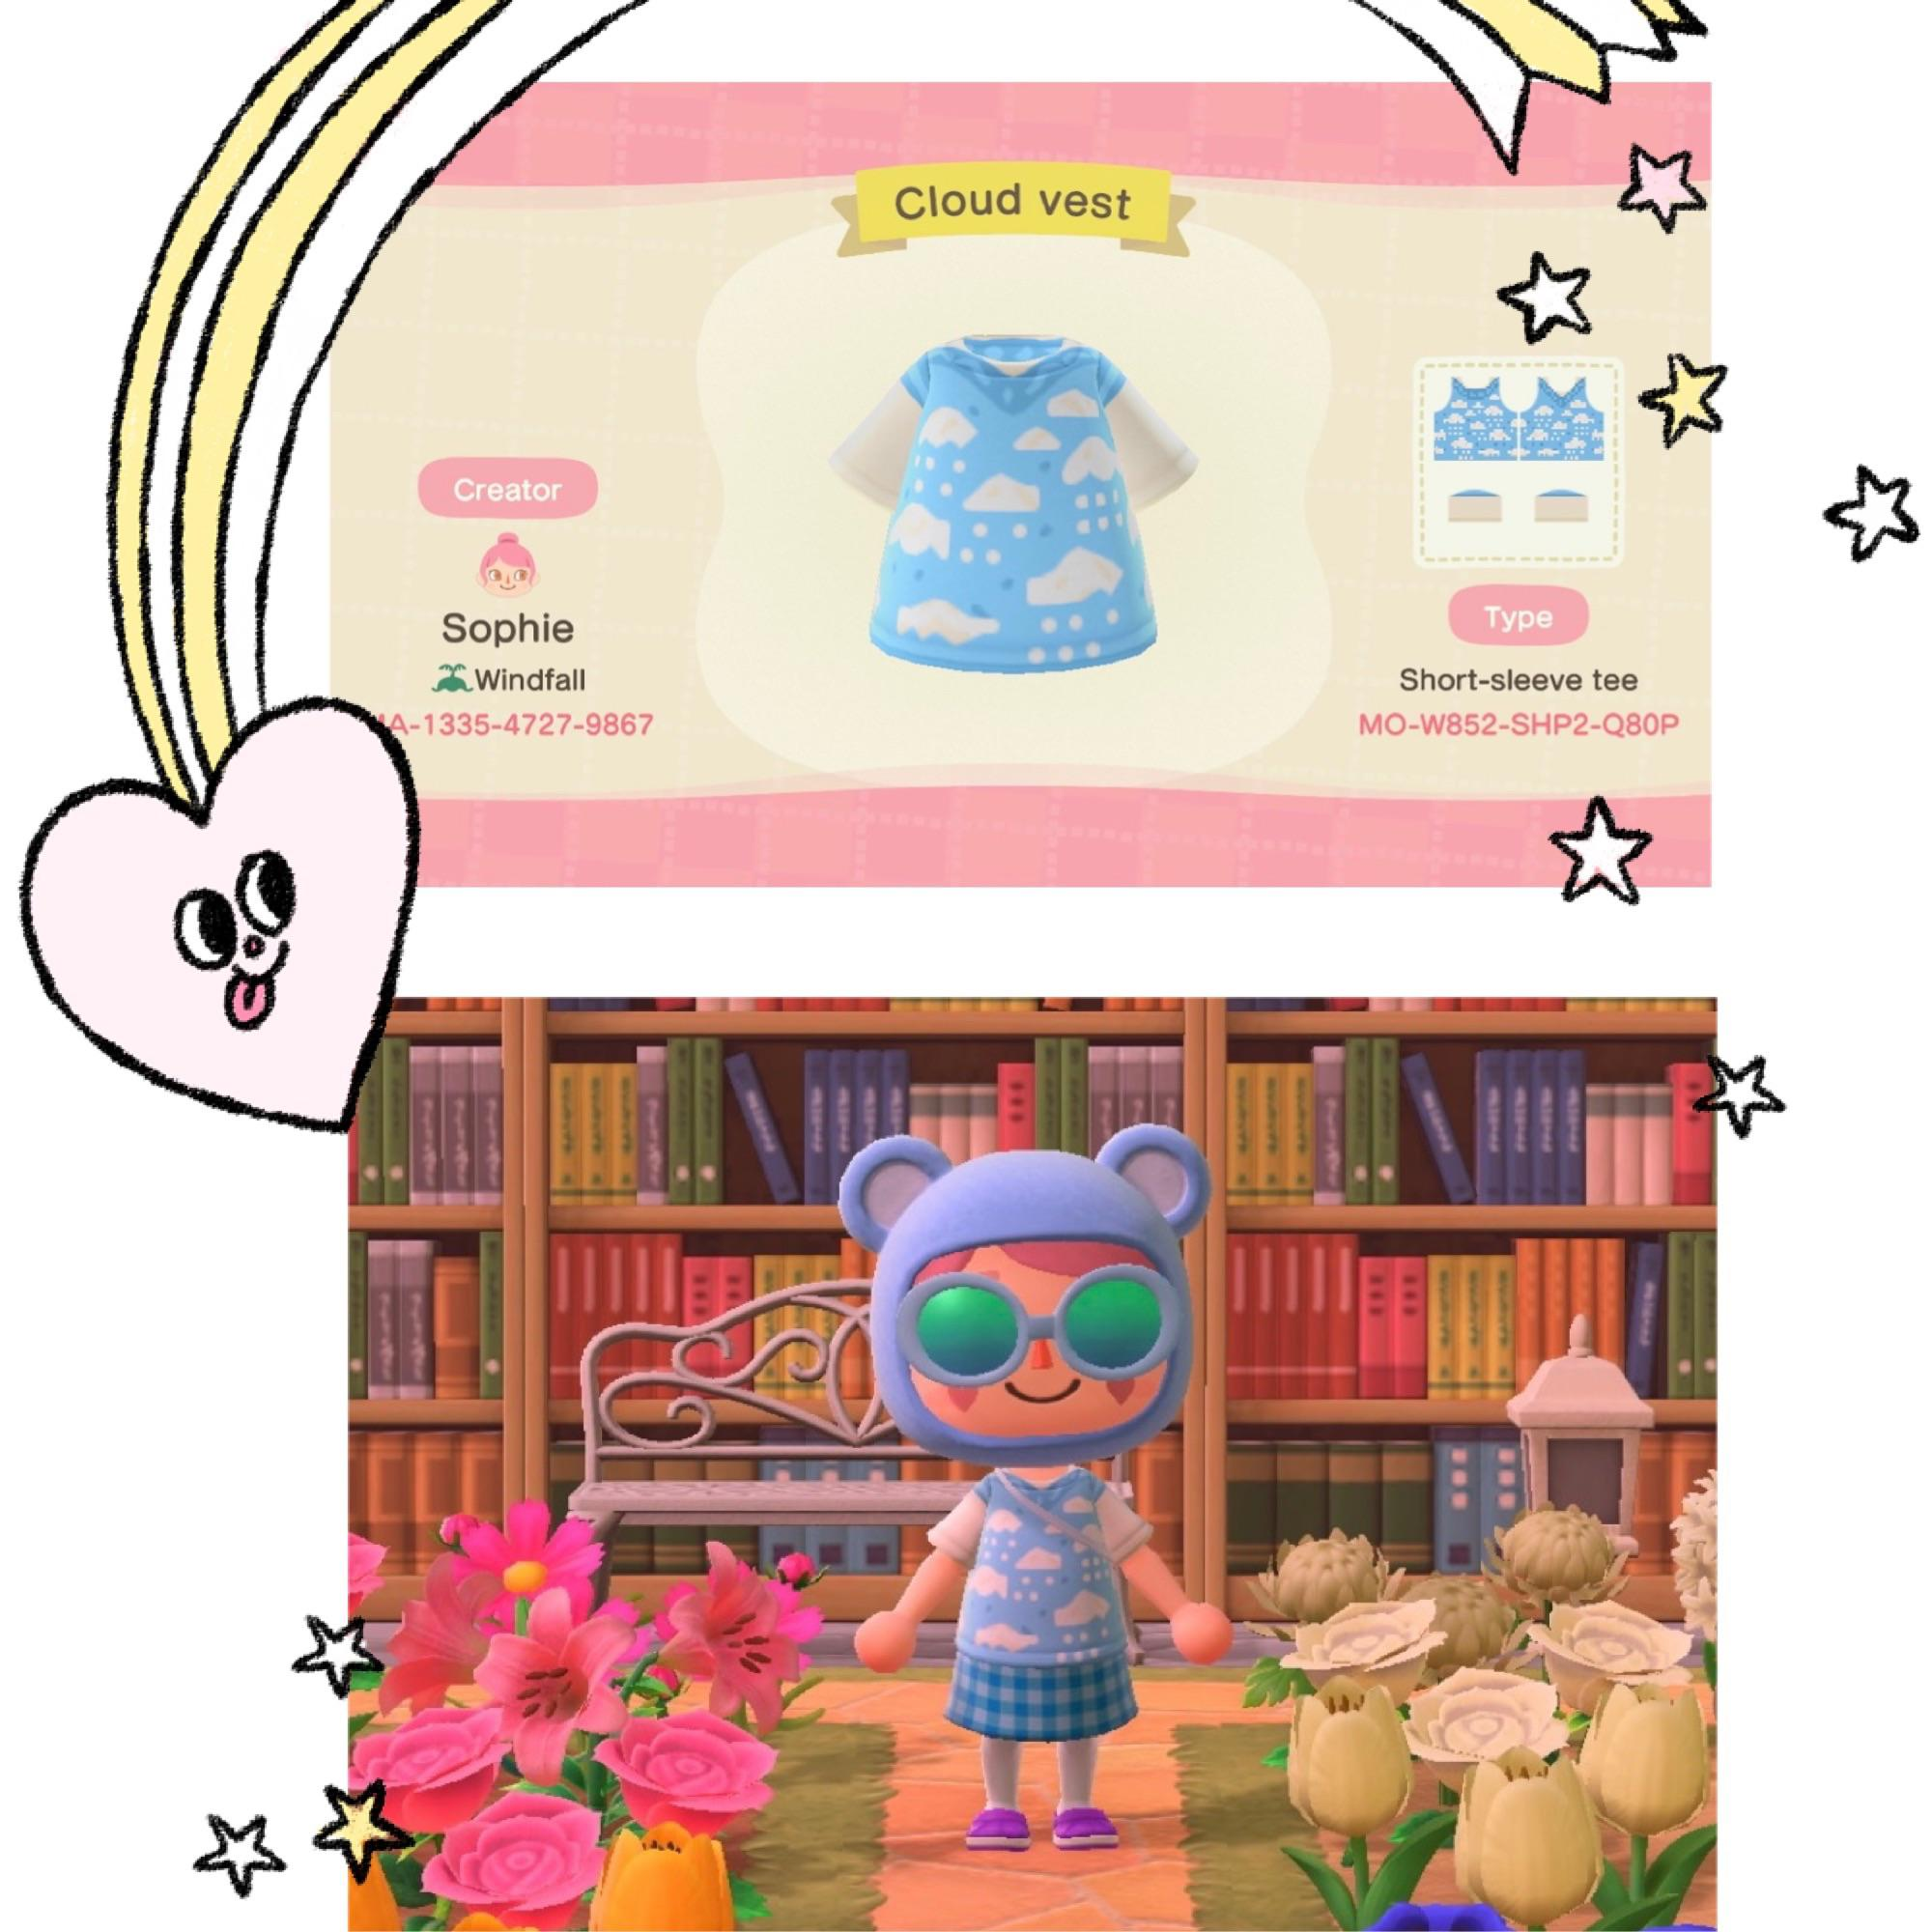 ✨🌧I have been obsessed with wearing my cloud sweater vest lately so I decided to make it in animal crossing🌧✨